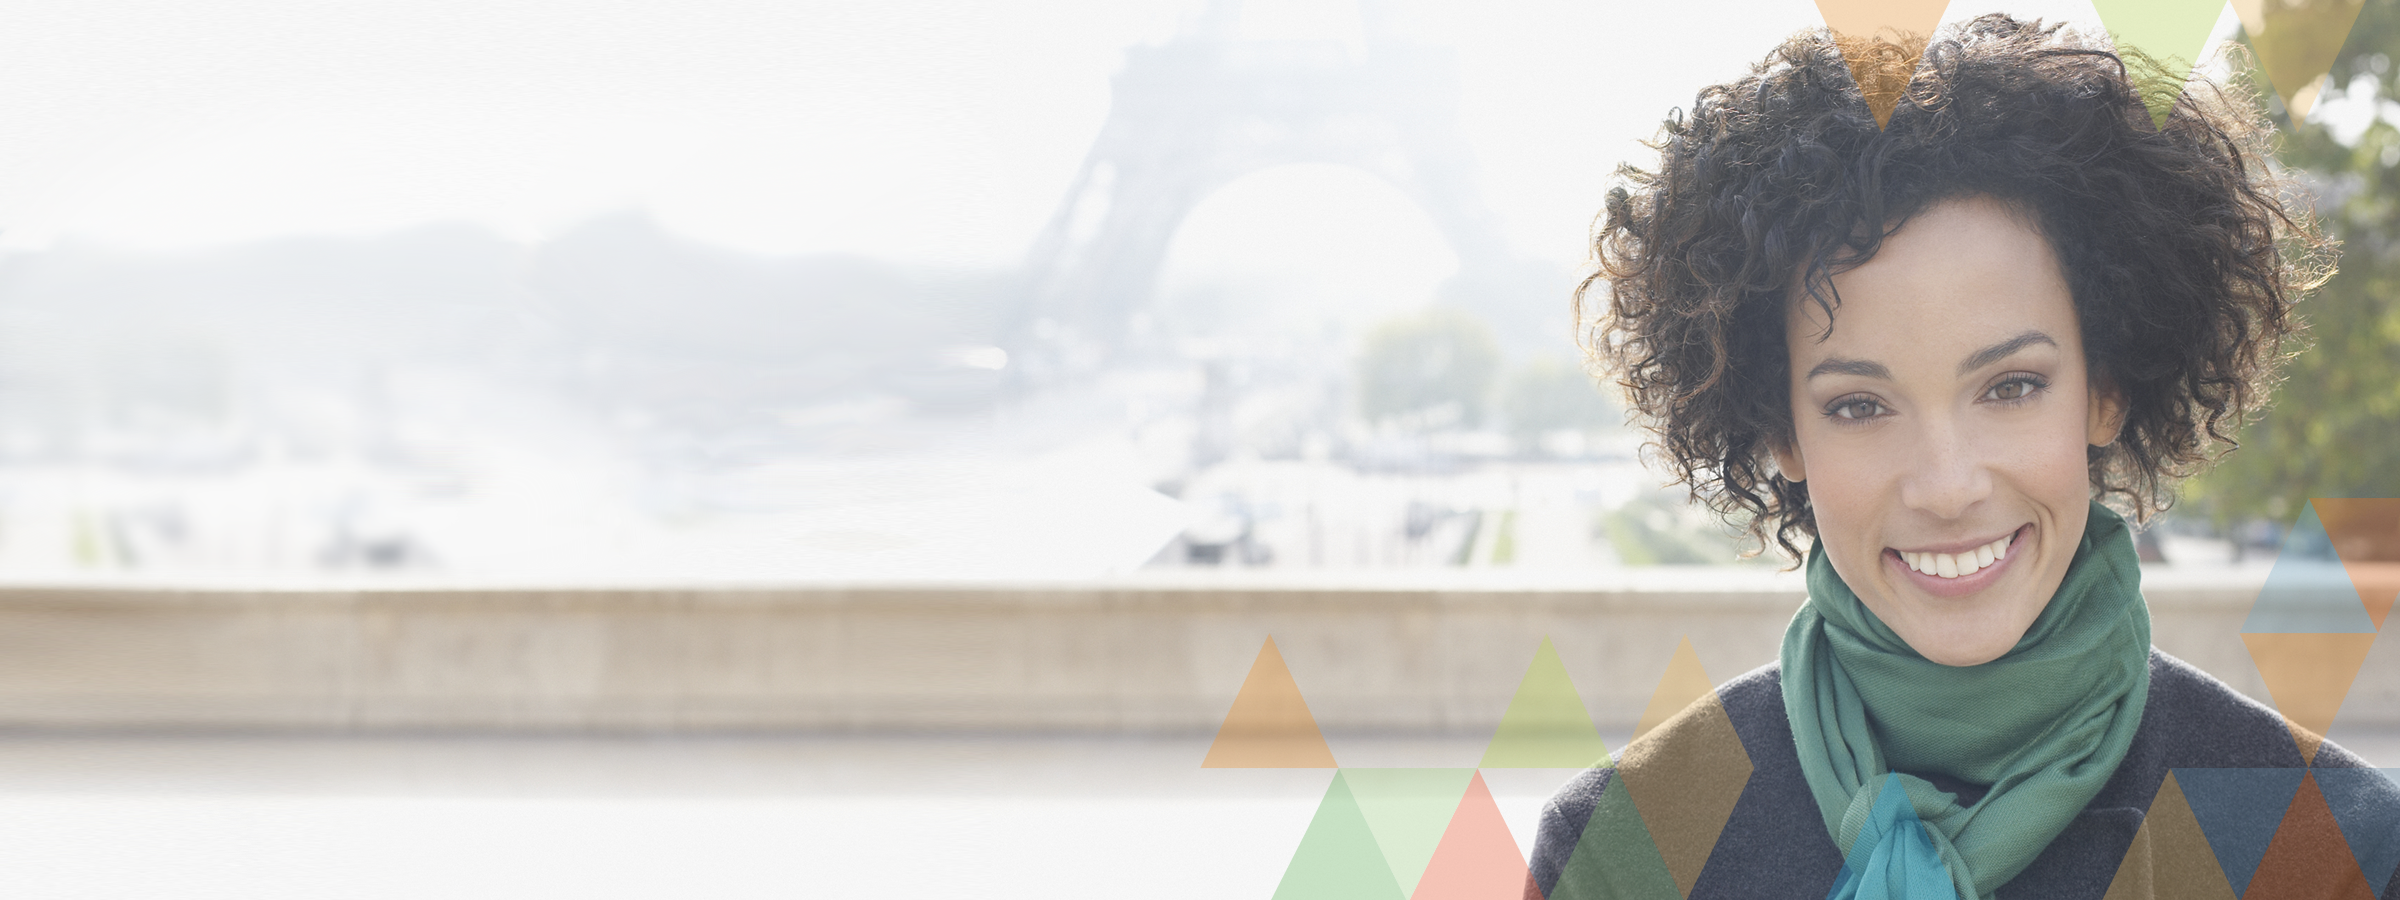 Accuity - Fircosoft - Lady by riverside in Paris, France